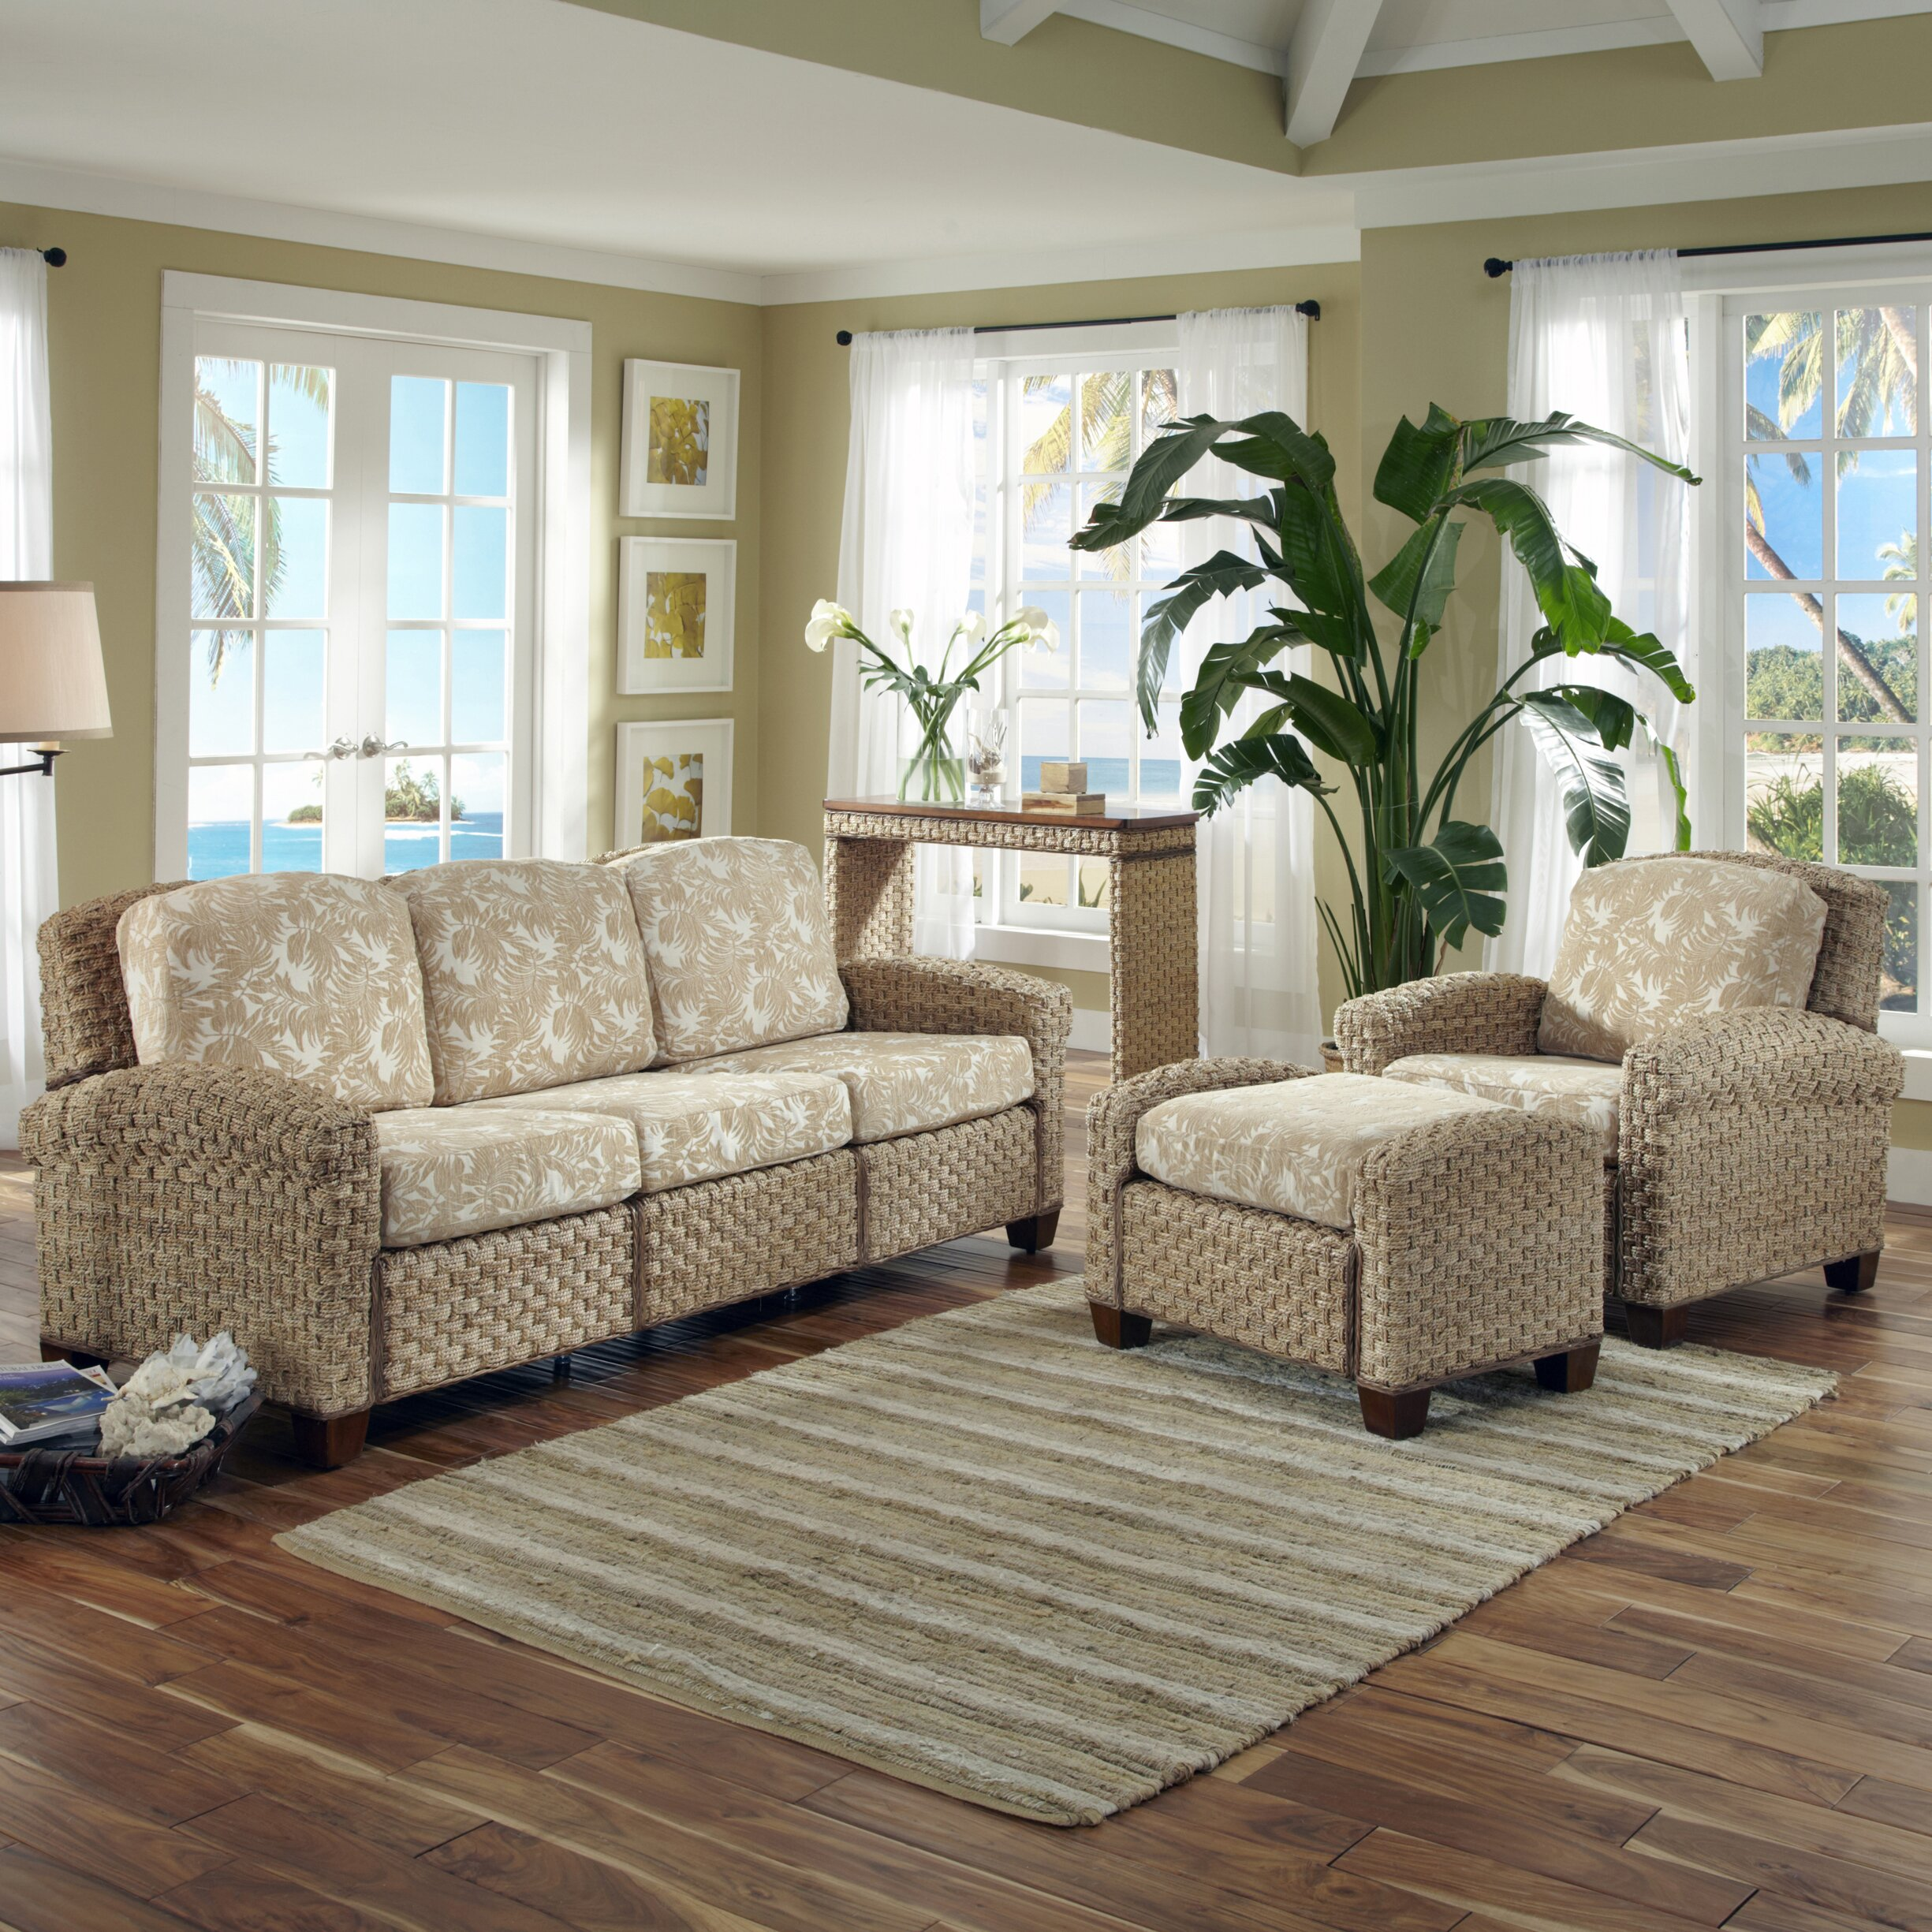 Home styles cabana banana ii 3 piece living room set wayfair for 3 piece living room set